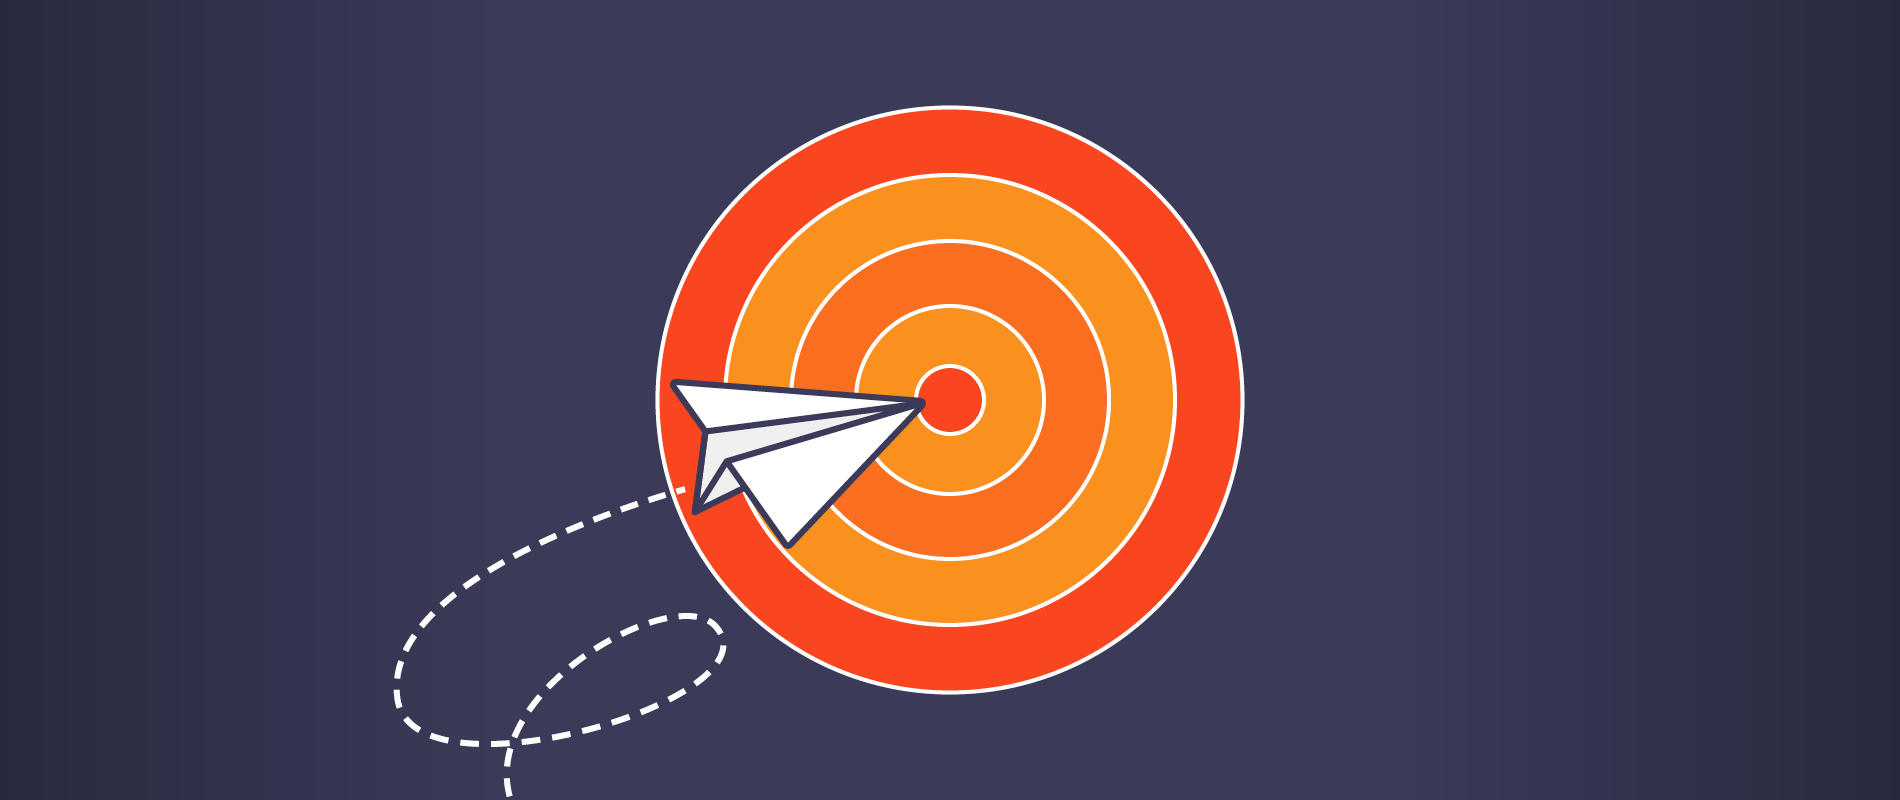 How To Create A Targeted Marketing Campaign